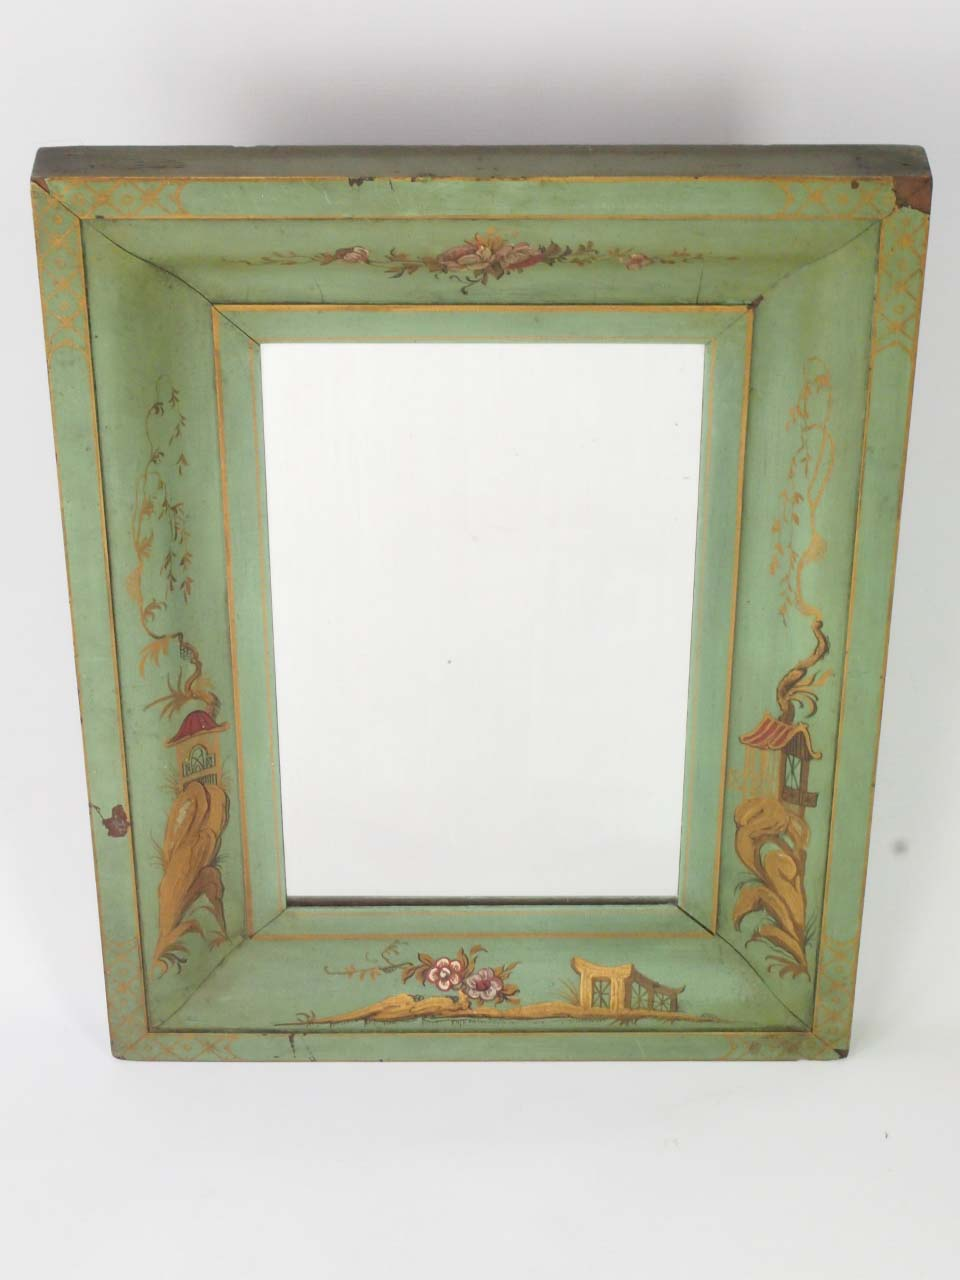 Antique edwardian chinoiserie mirror for sale wall mirror for Mirrors for sale